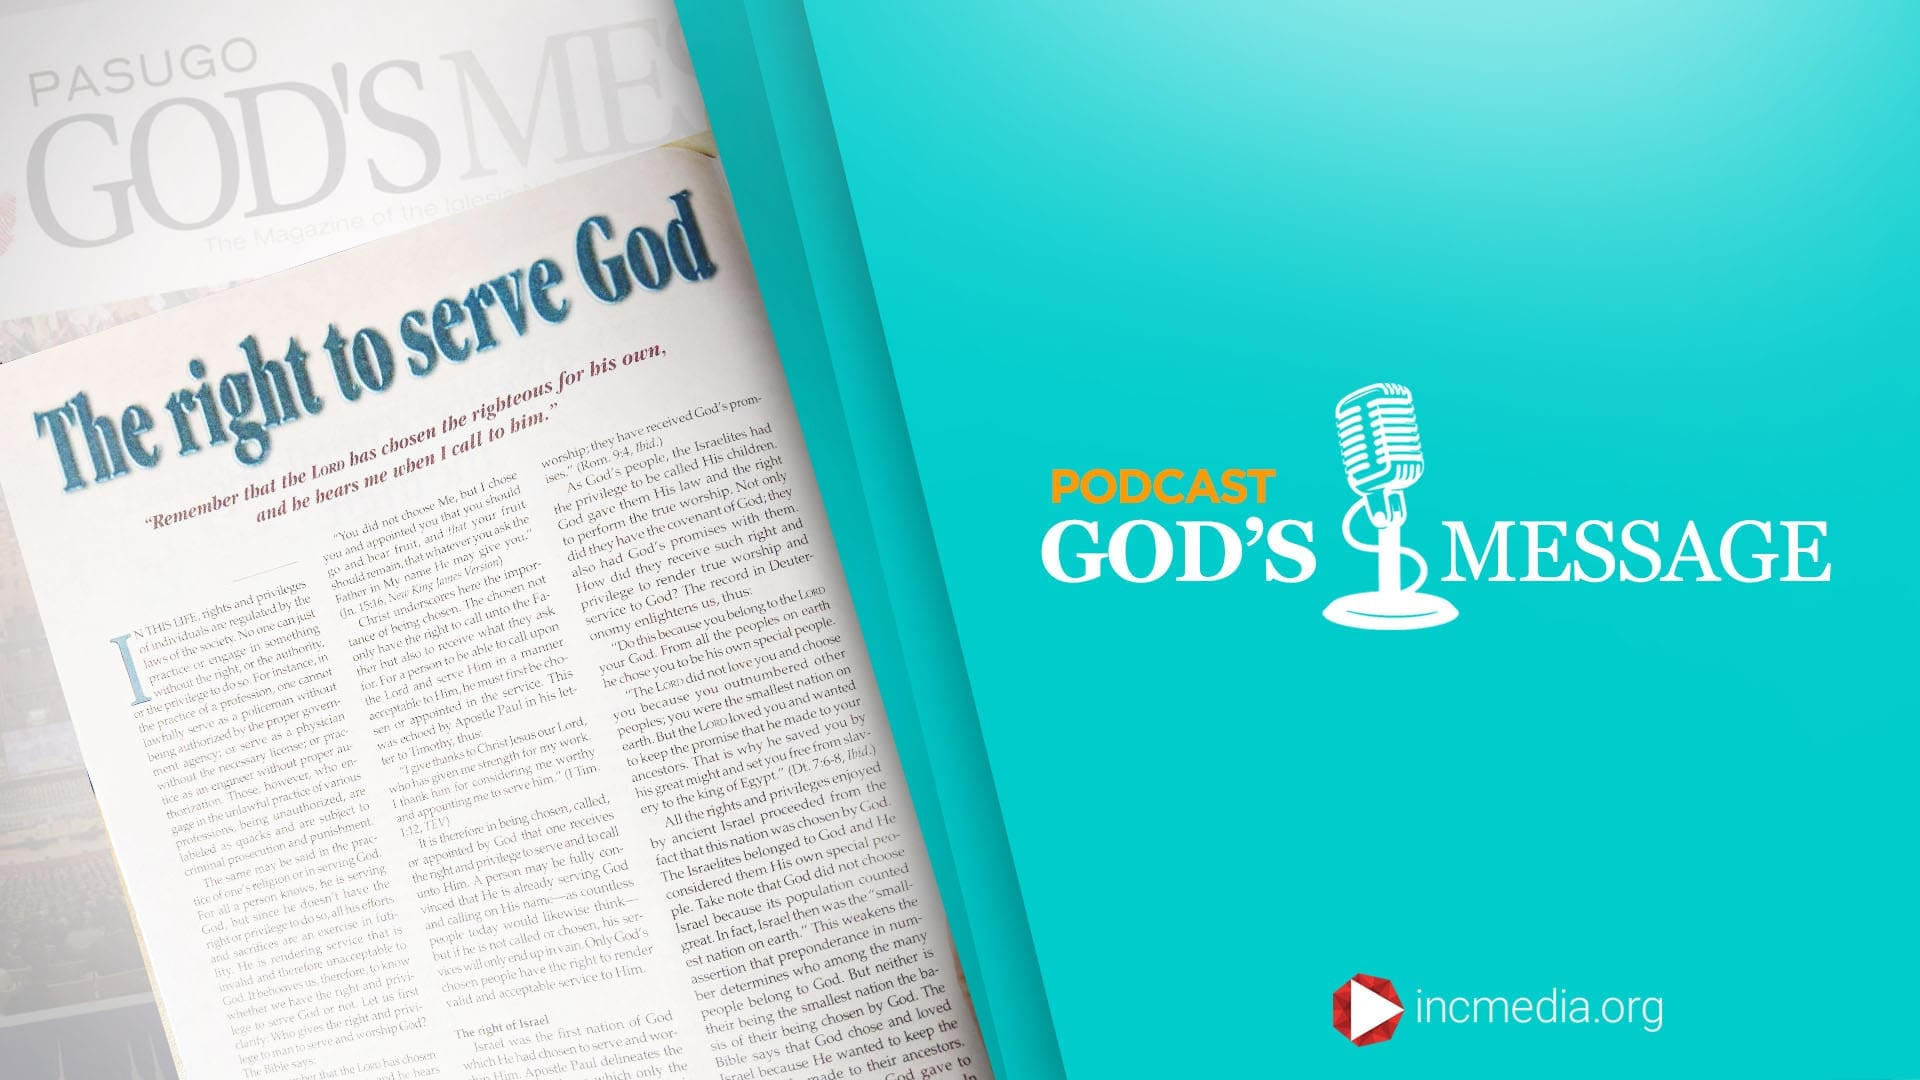 The Right To Serve God